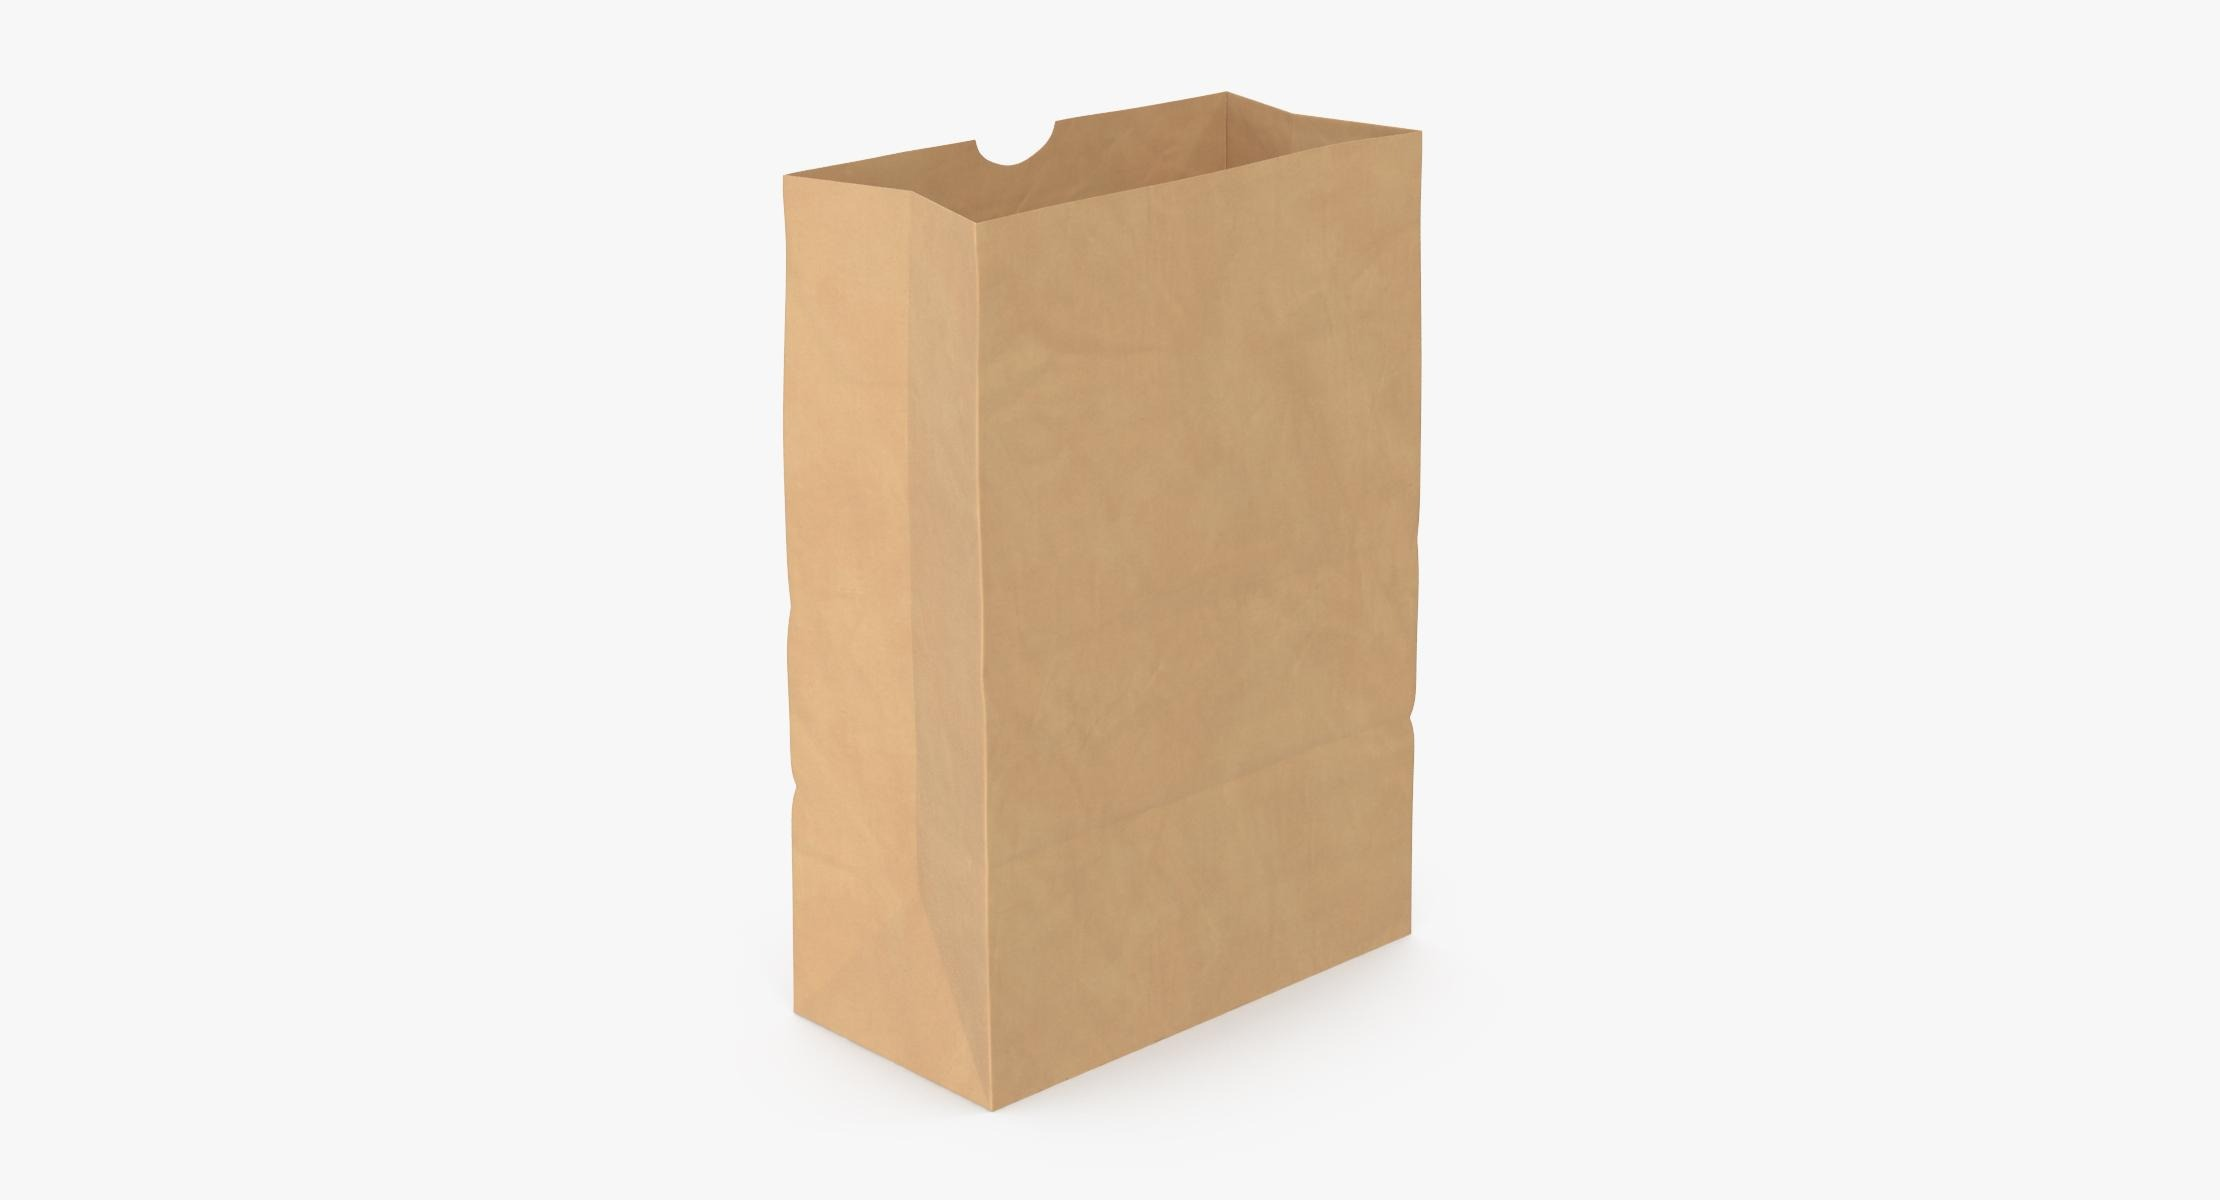 Grocery Bag No Handle Mockup Large Open model - reel 1